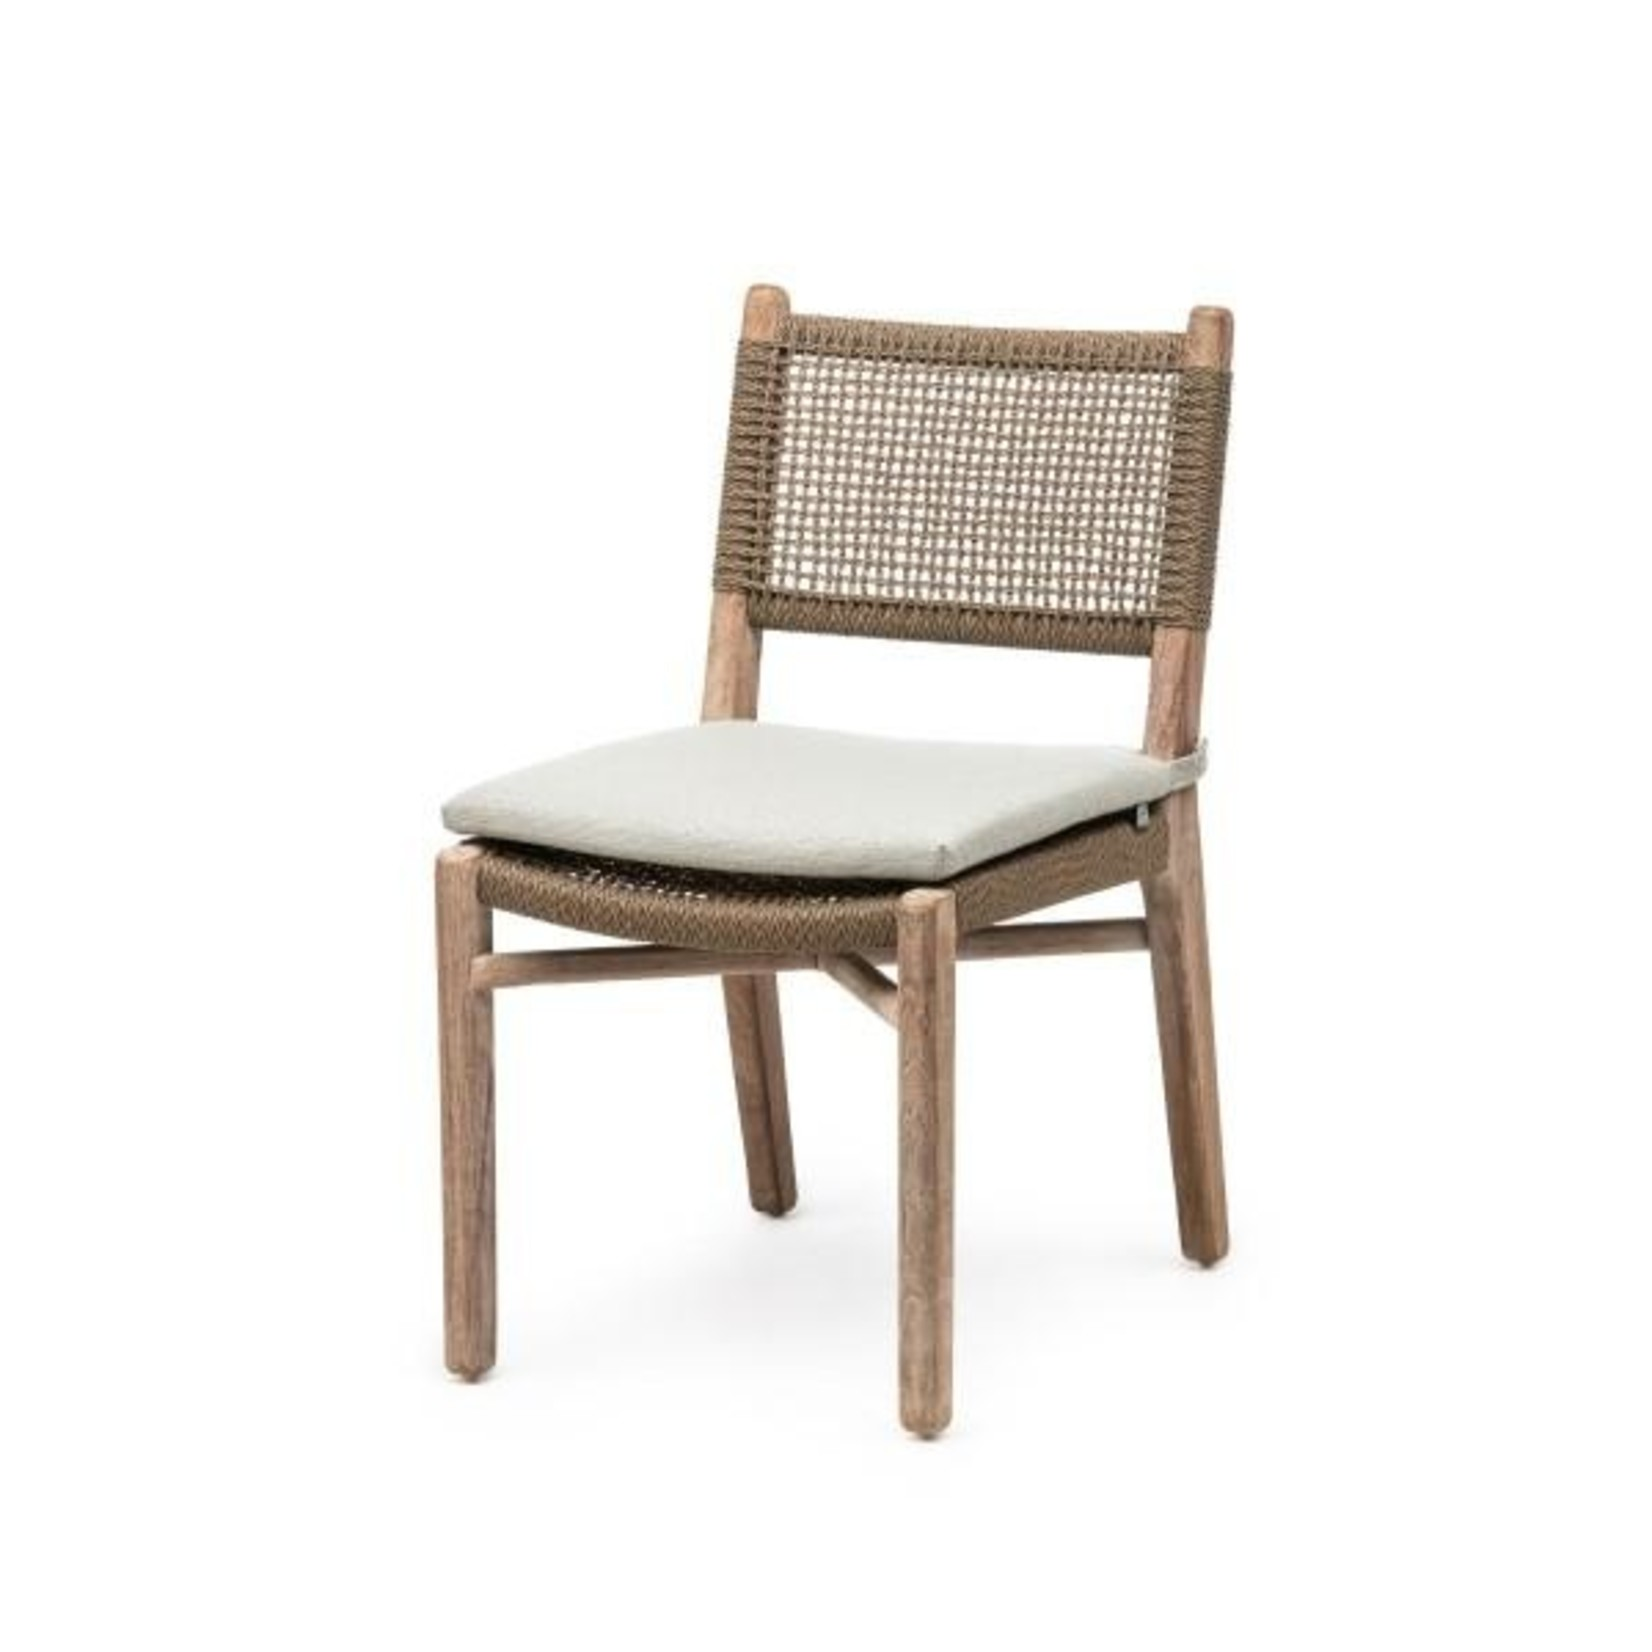 Gommaire Chair Fiona | Teak Natural Gray / PE Wicker Antique Weed